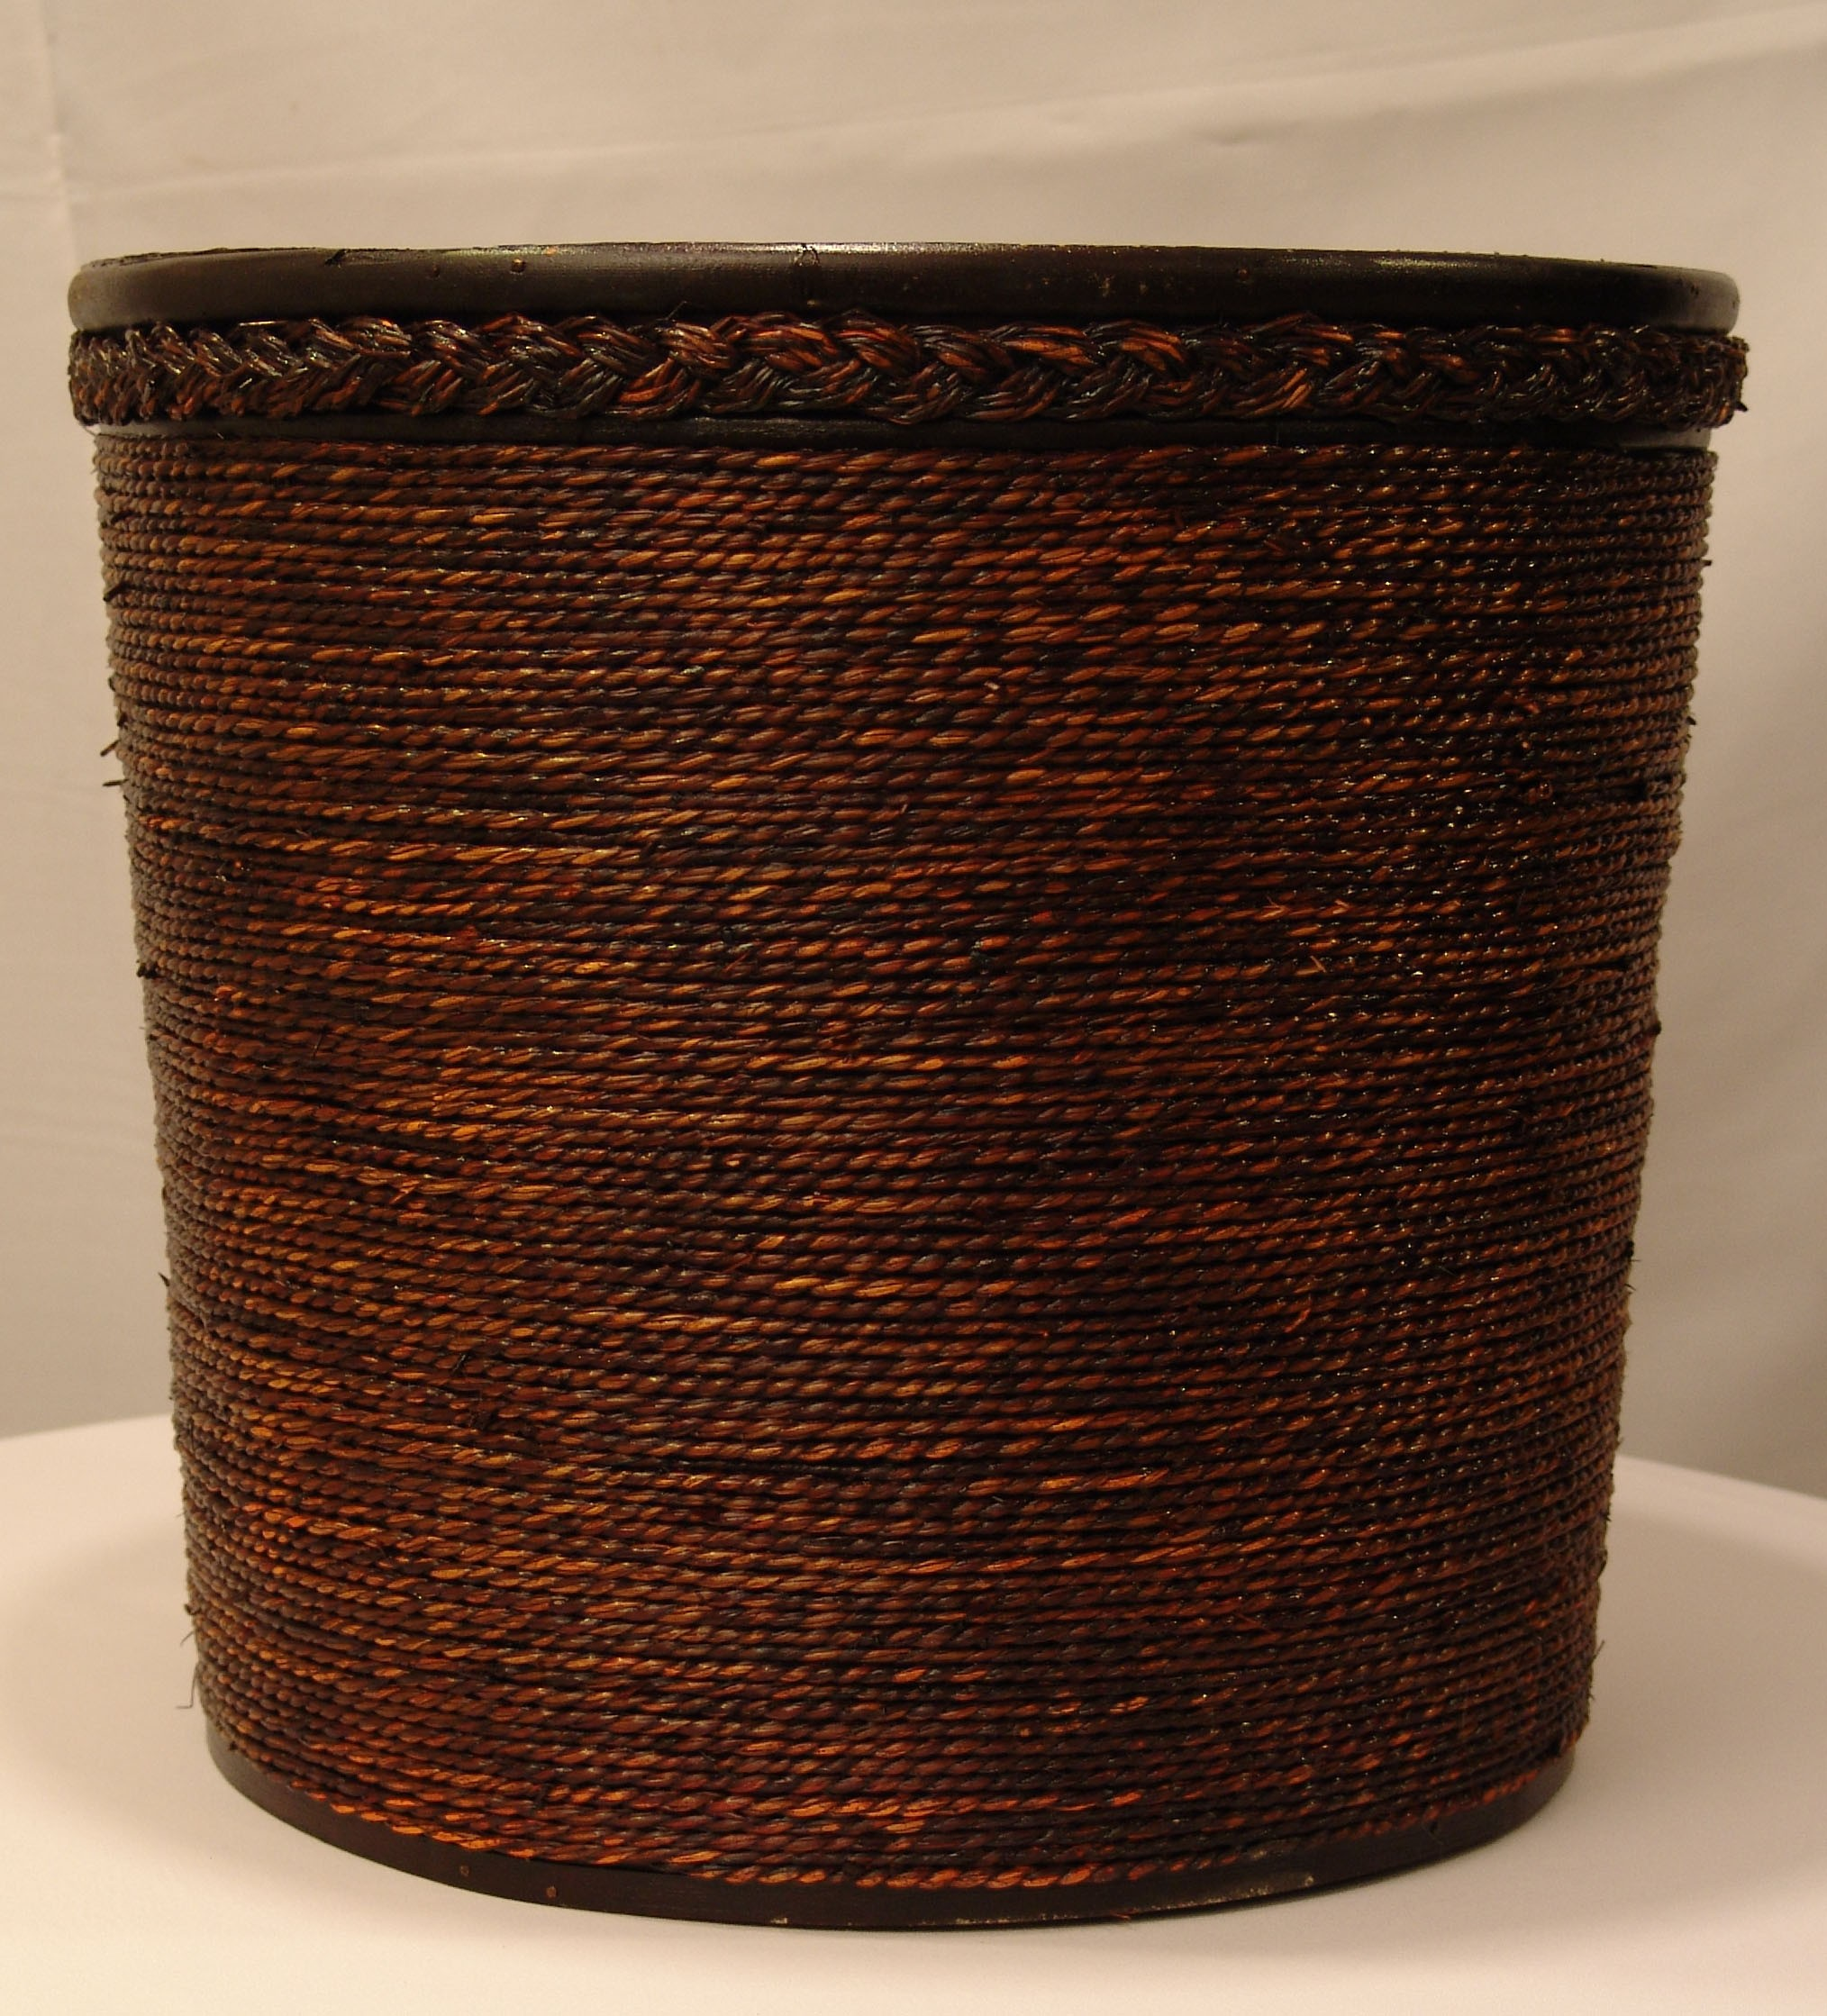 Wicker Specialty Containers